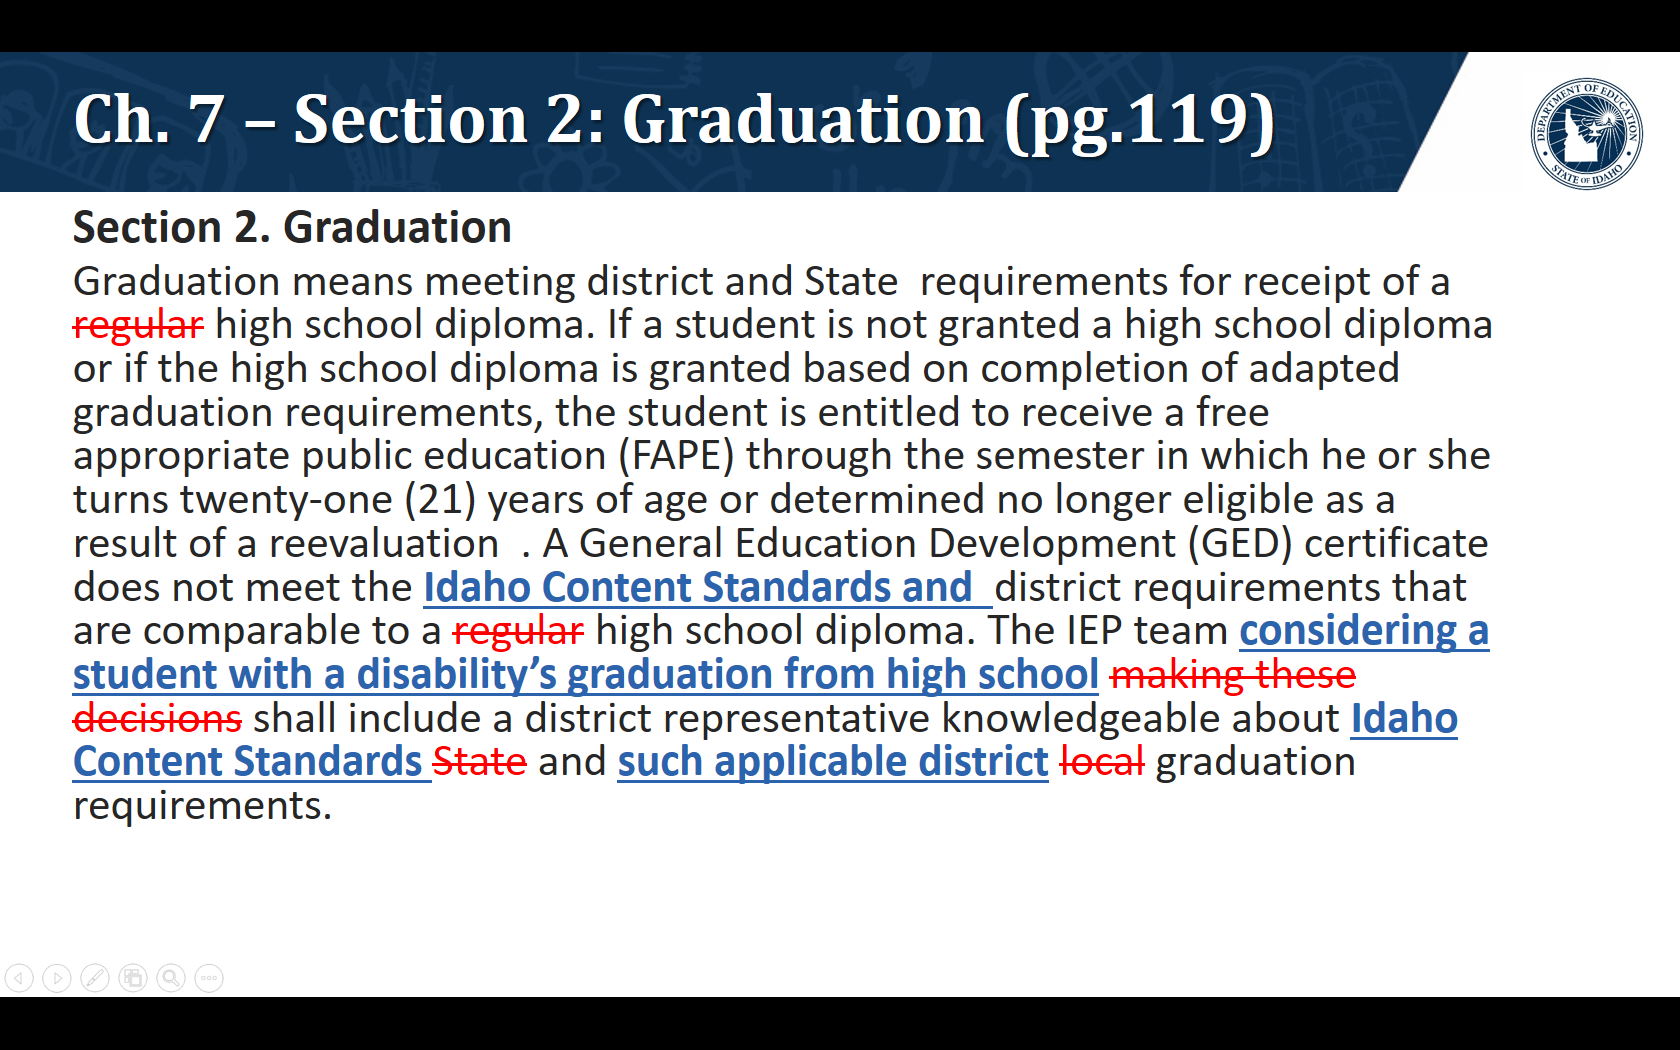 Section 2. Graduation. Graduation means meeting district and State requirements for receipt of a high school diploma. If a student is not granted a high school diploma or if the high school diploma is granted based on completion of adapted graduation requirements, the student is entitled to receive a free appropriate public education (FAPE) through the semester in which he or she turns twenty-one (21) years of age or determined no longer eligible as a result of a reevaluation. A General Education Development (GED) certificate does not meet the Idaho Content Standards and  district requirements that are comparable to a high school diploma. The IEP team considering a student with a disability's graduation from high school shall include a district representative knowledgeable about Idaho Content Standards and such applicable district graduation requirements.